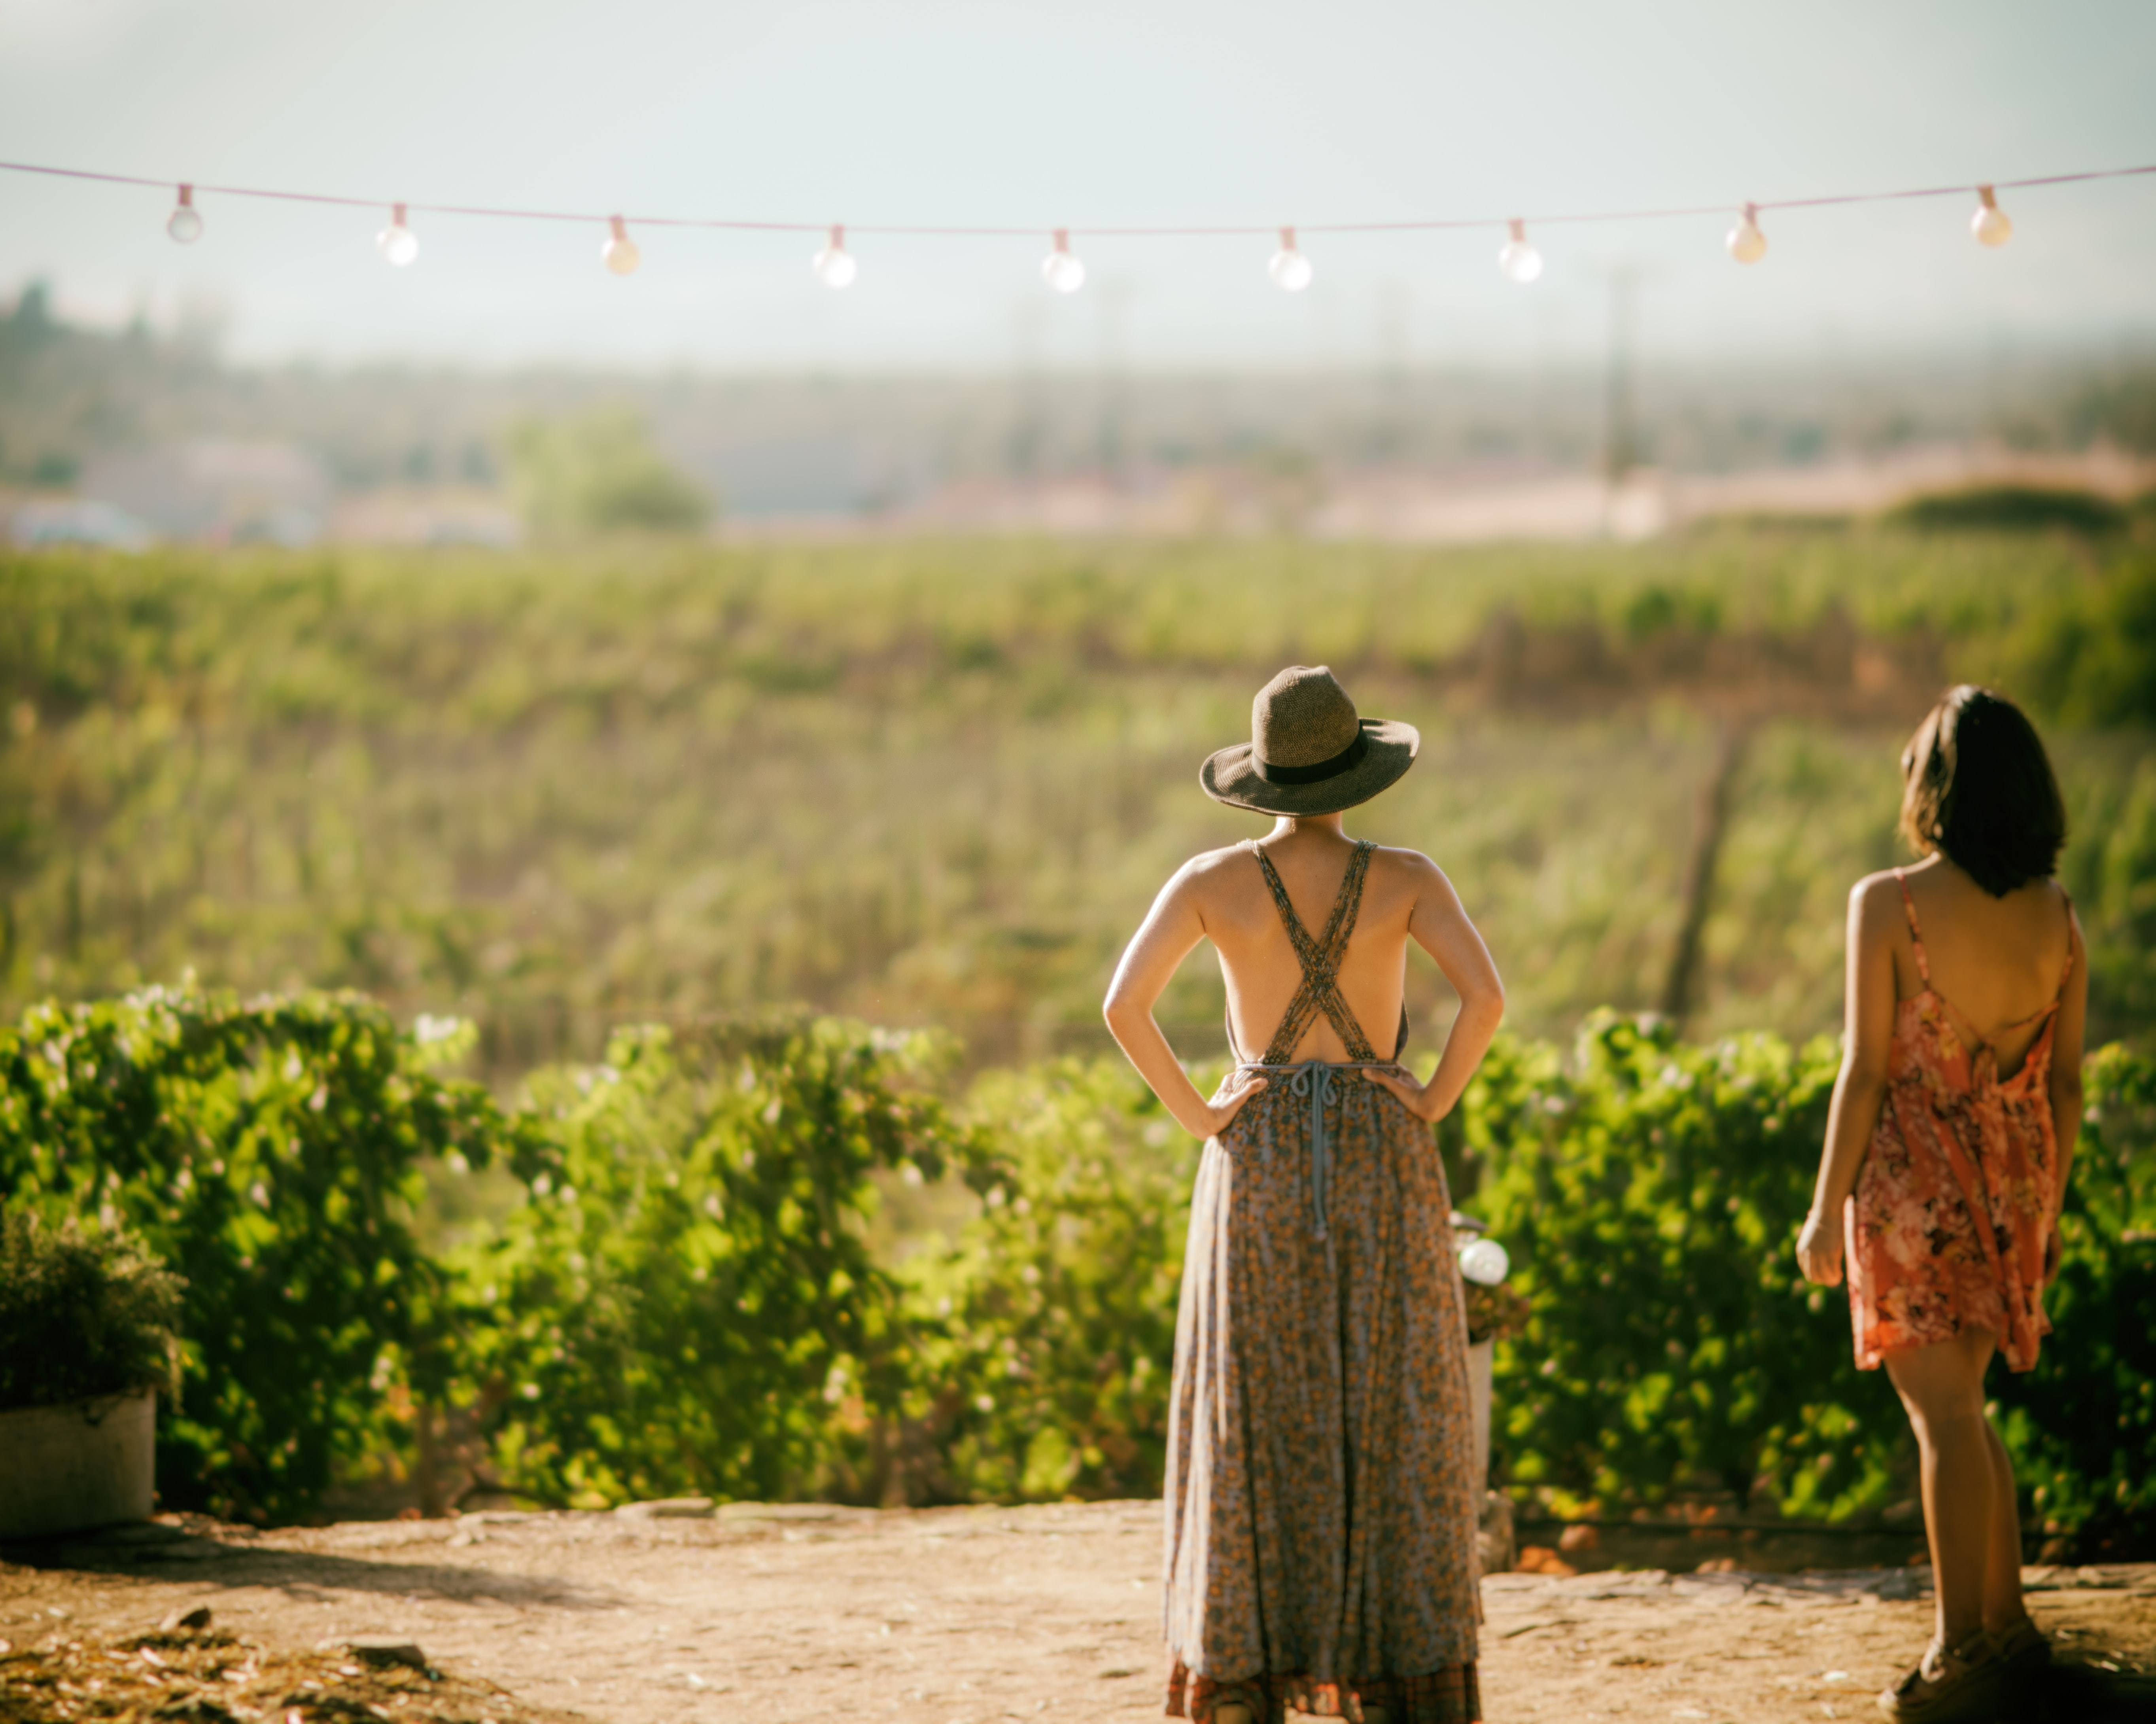 Women in summer dresses standing outside a Mogor vineyard looking upon the field under the sunlight